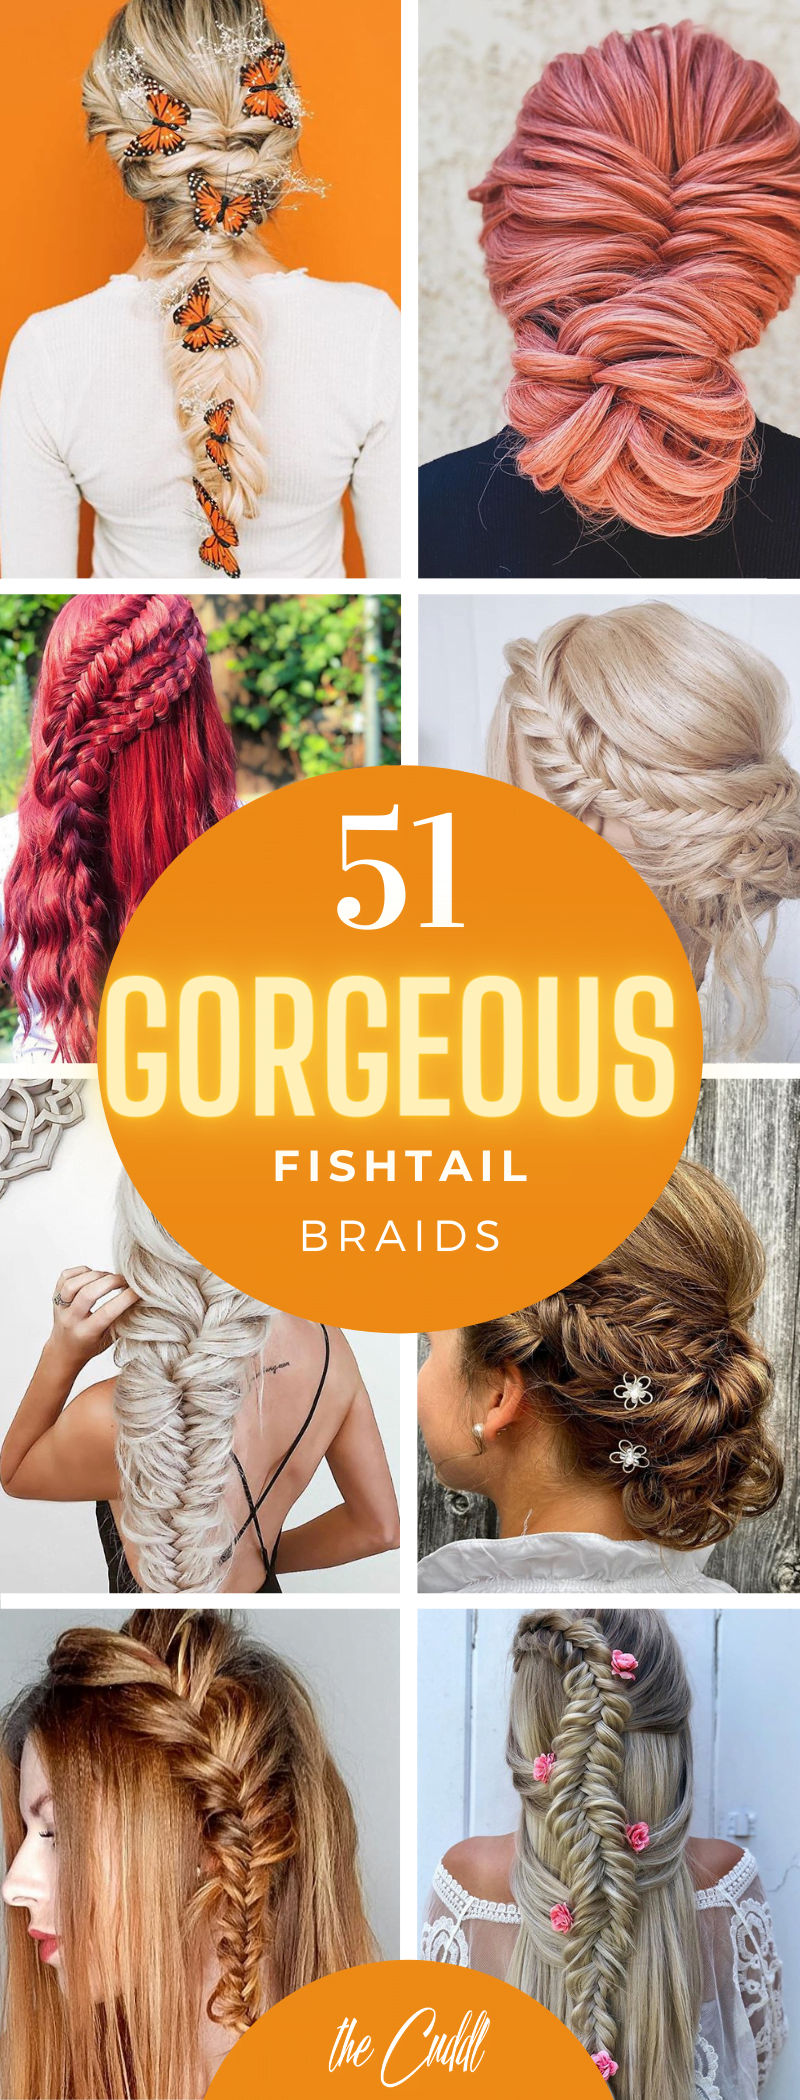 50 Amazing Fishtail Braid Hairstyles to Inspire You